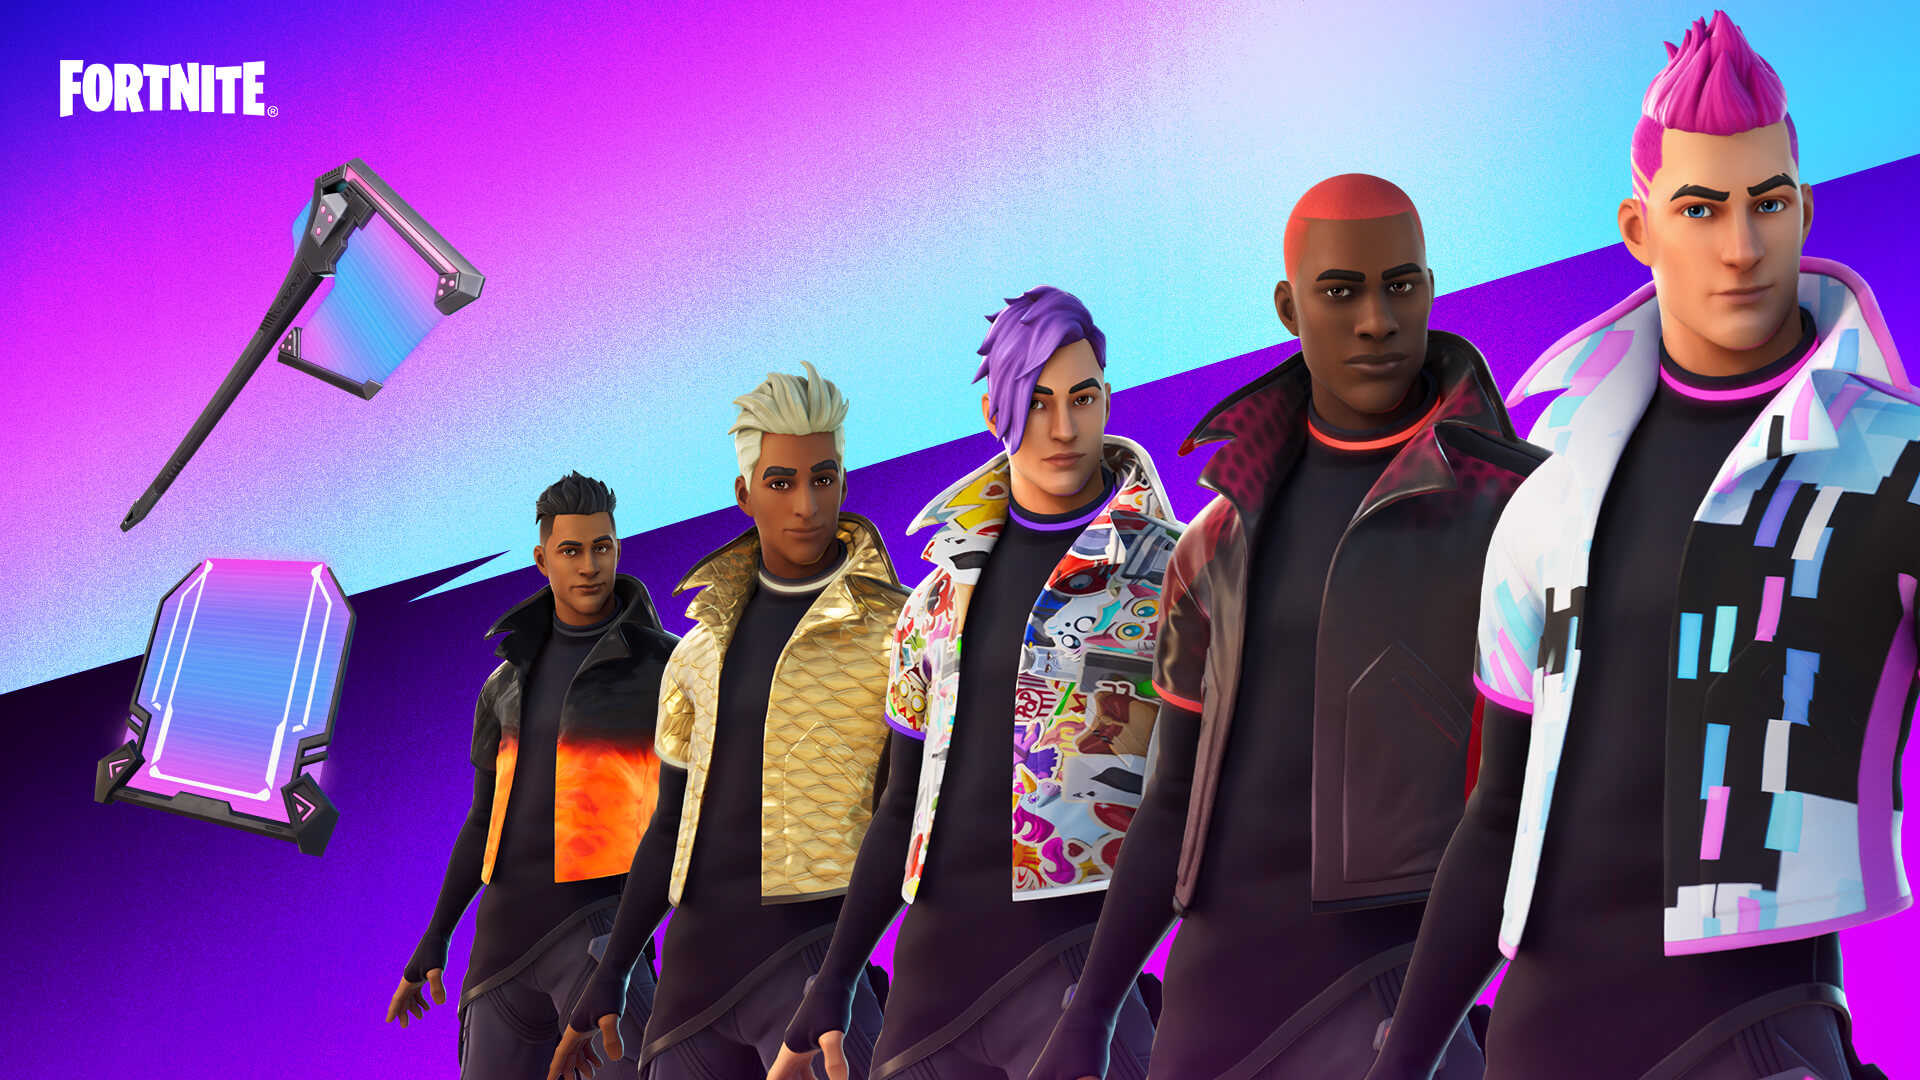 Fortnite Show Your Style Male Outfits